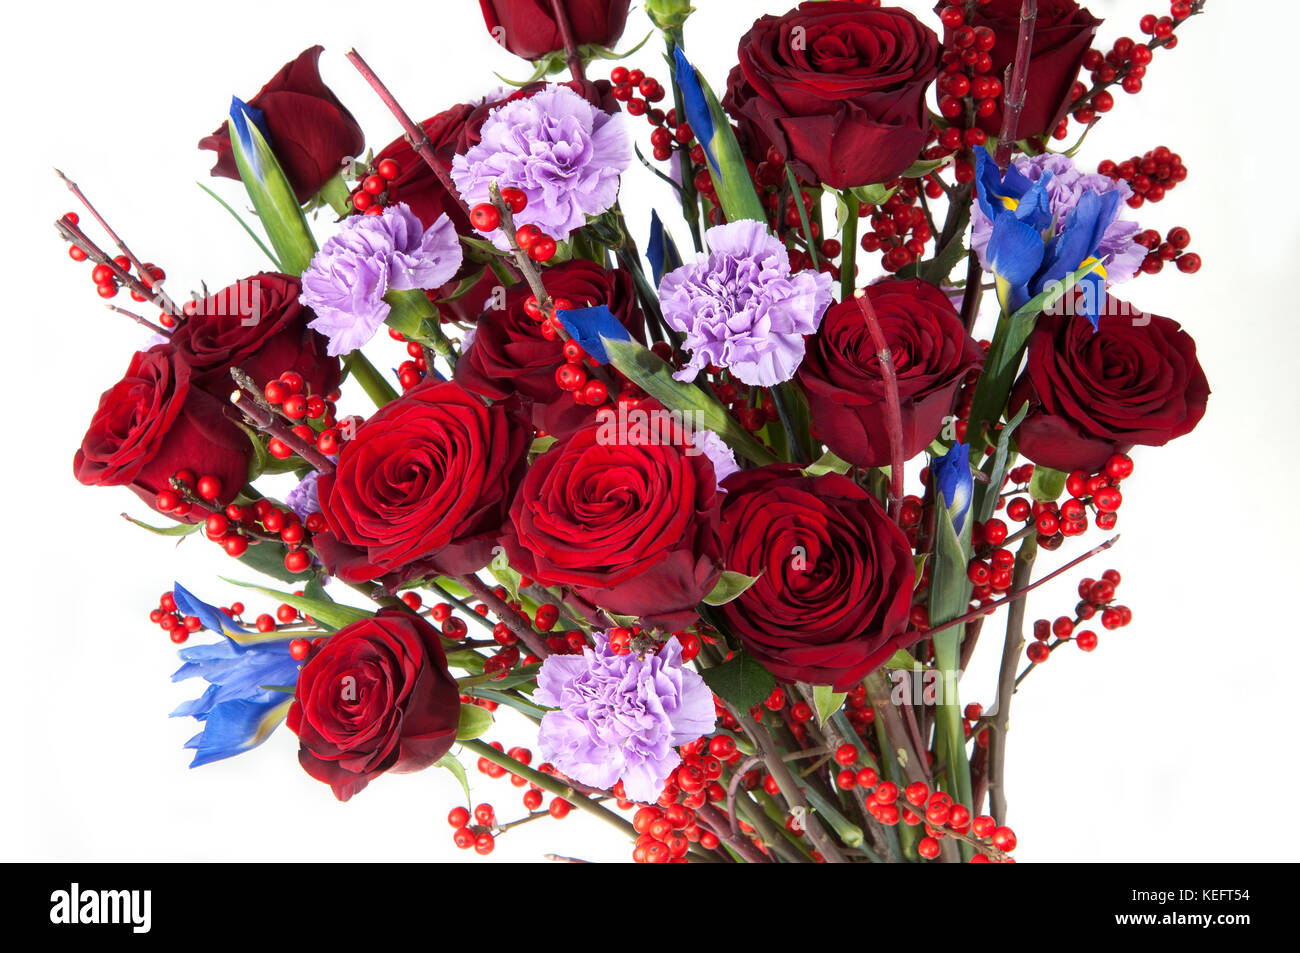 A bouquet of red roses and assorted flowers on white background a bouquet of red roses and assorted flowers on white background close up valentines day izmirmasajfo